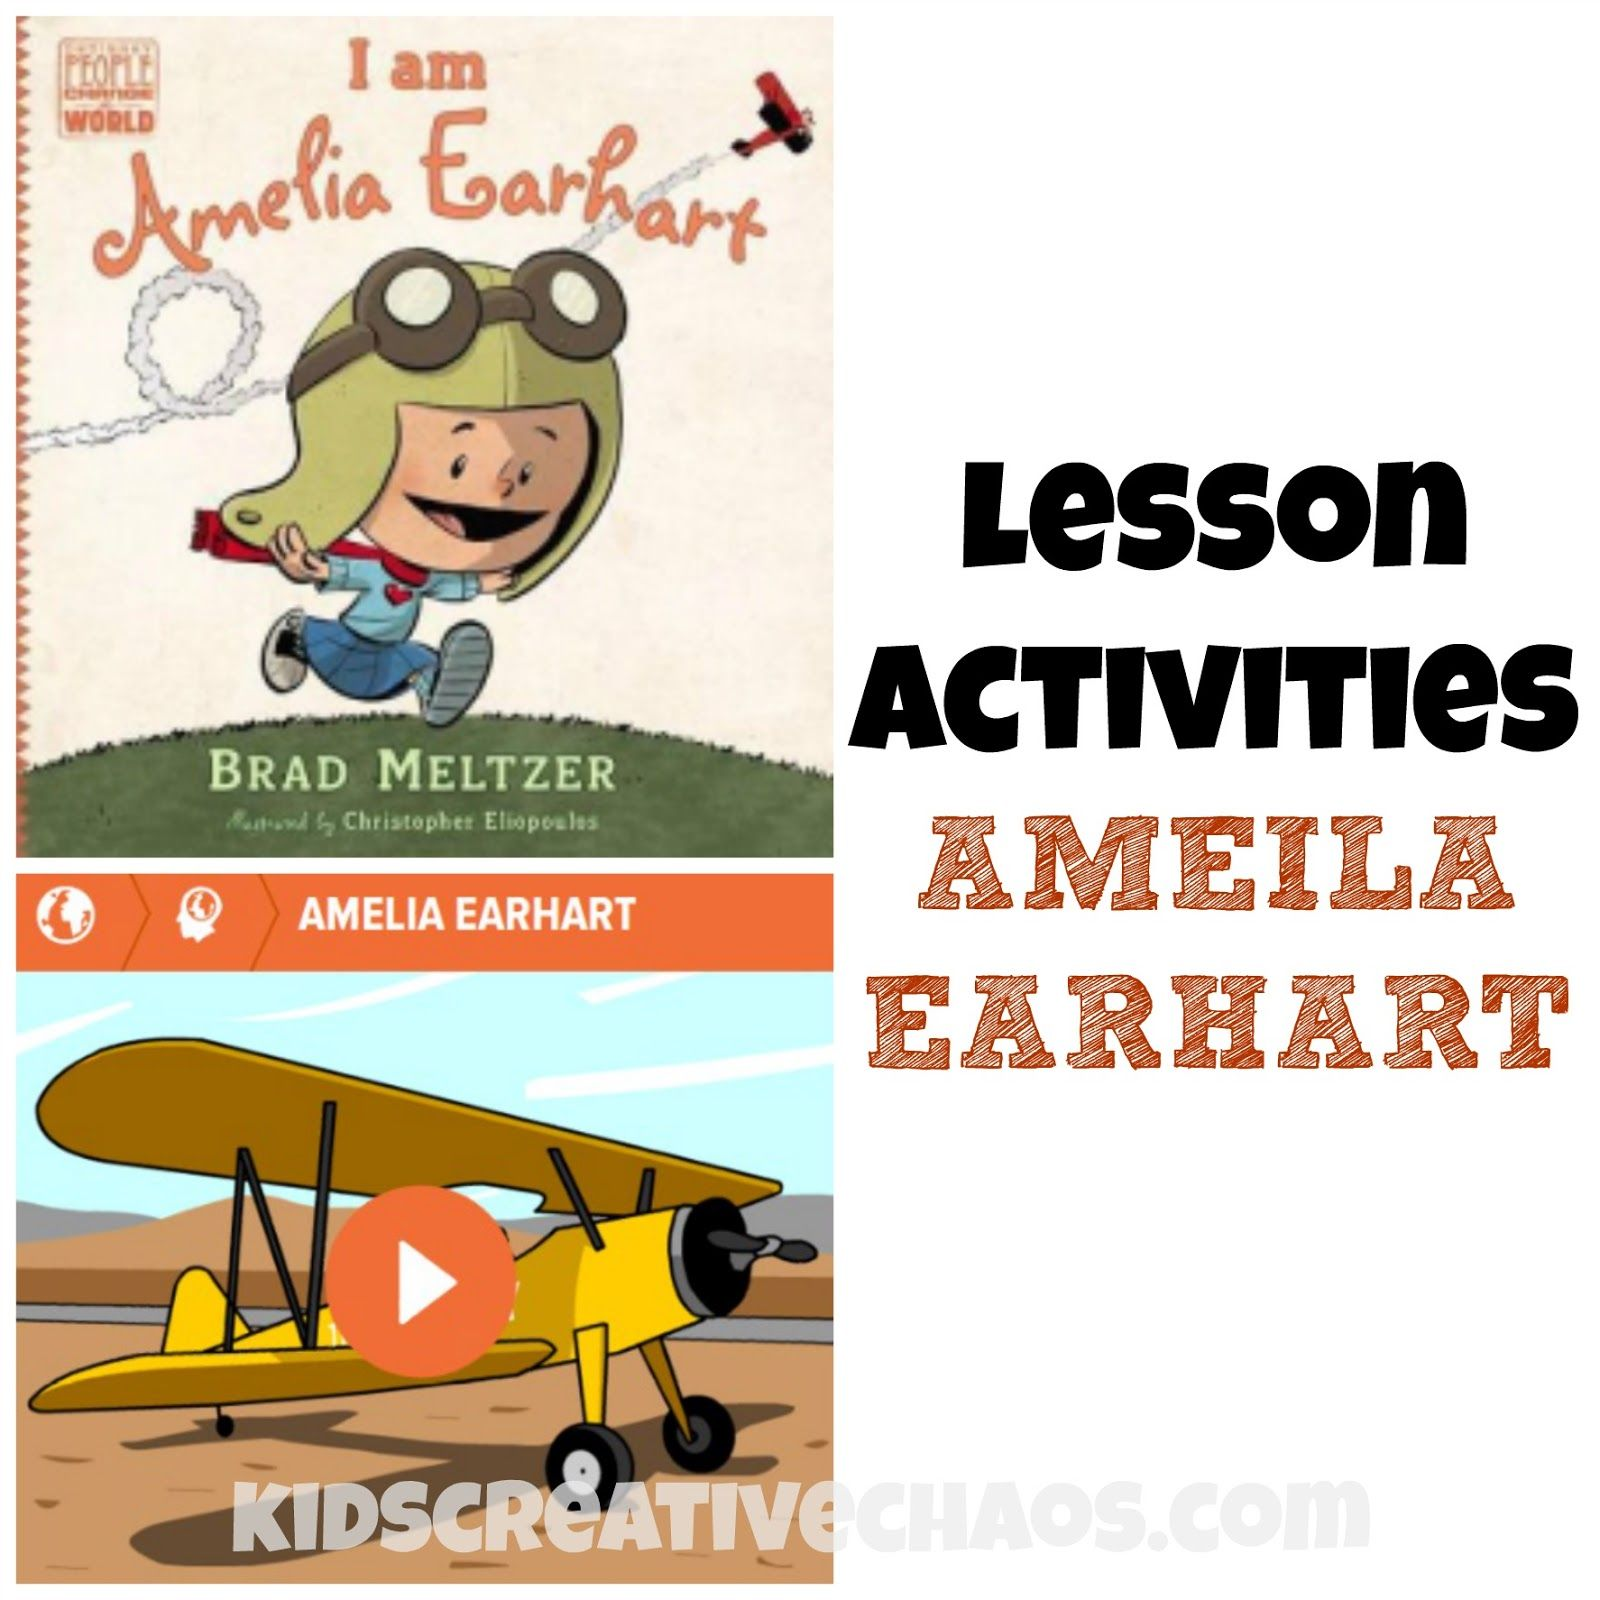 Amelia Earhart Popular Lesson Activities Book Review